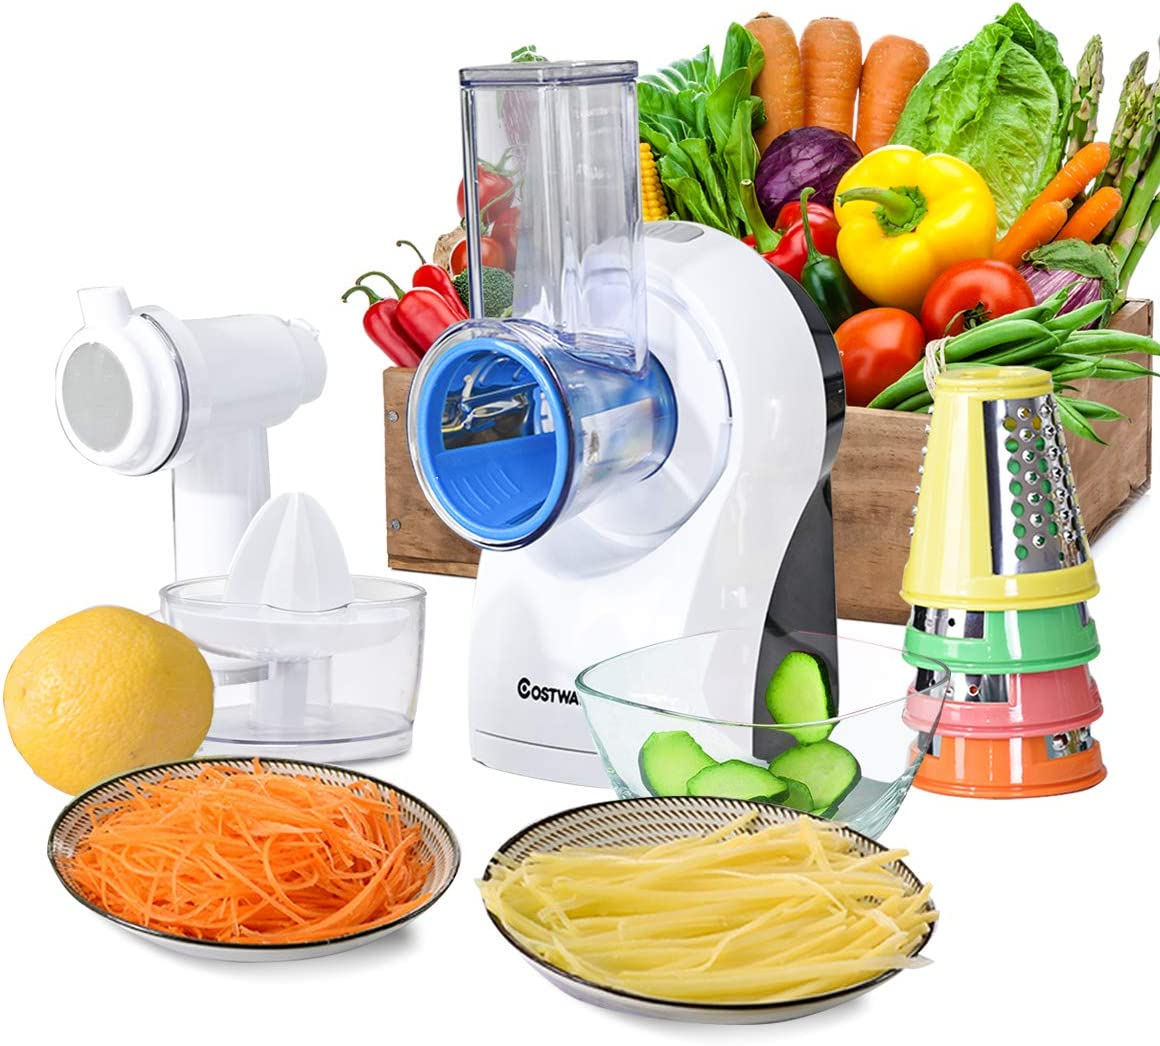 COSTWAY 3-In-1 food Processor, Efficient and Multifunctional Salad Maker Vegetable Slicer Cheese Grater with 5 Stainless Steel Rotary Drum Grater Slicer, Fast Fruit Cutter